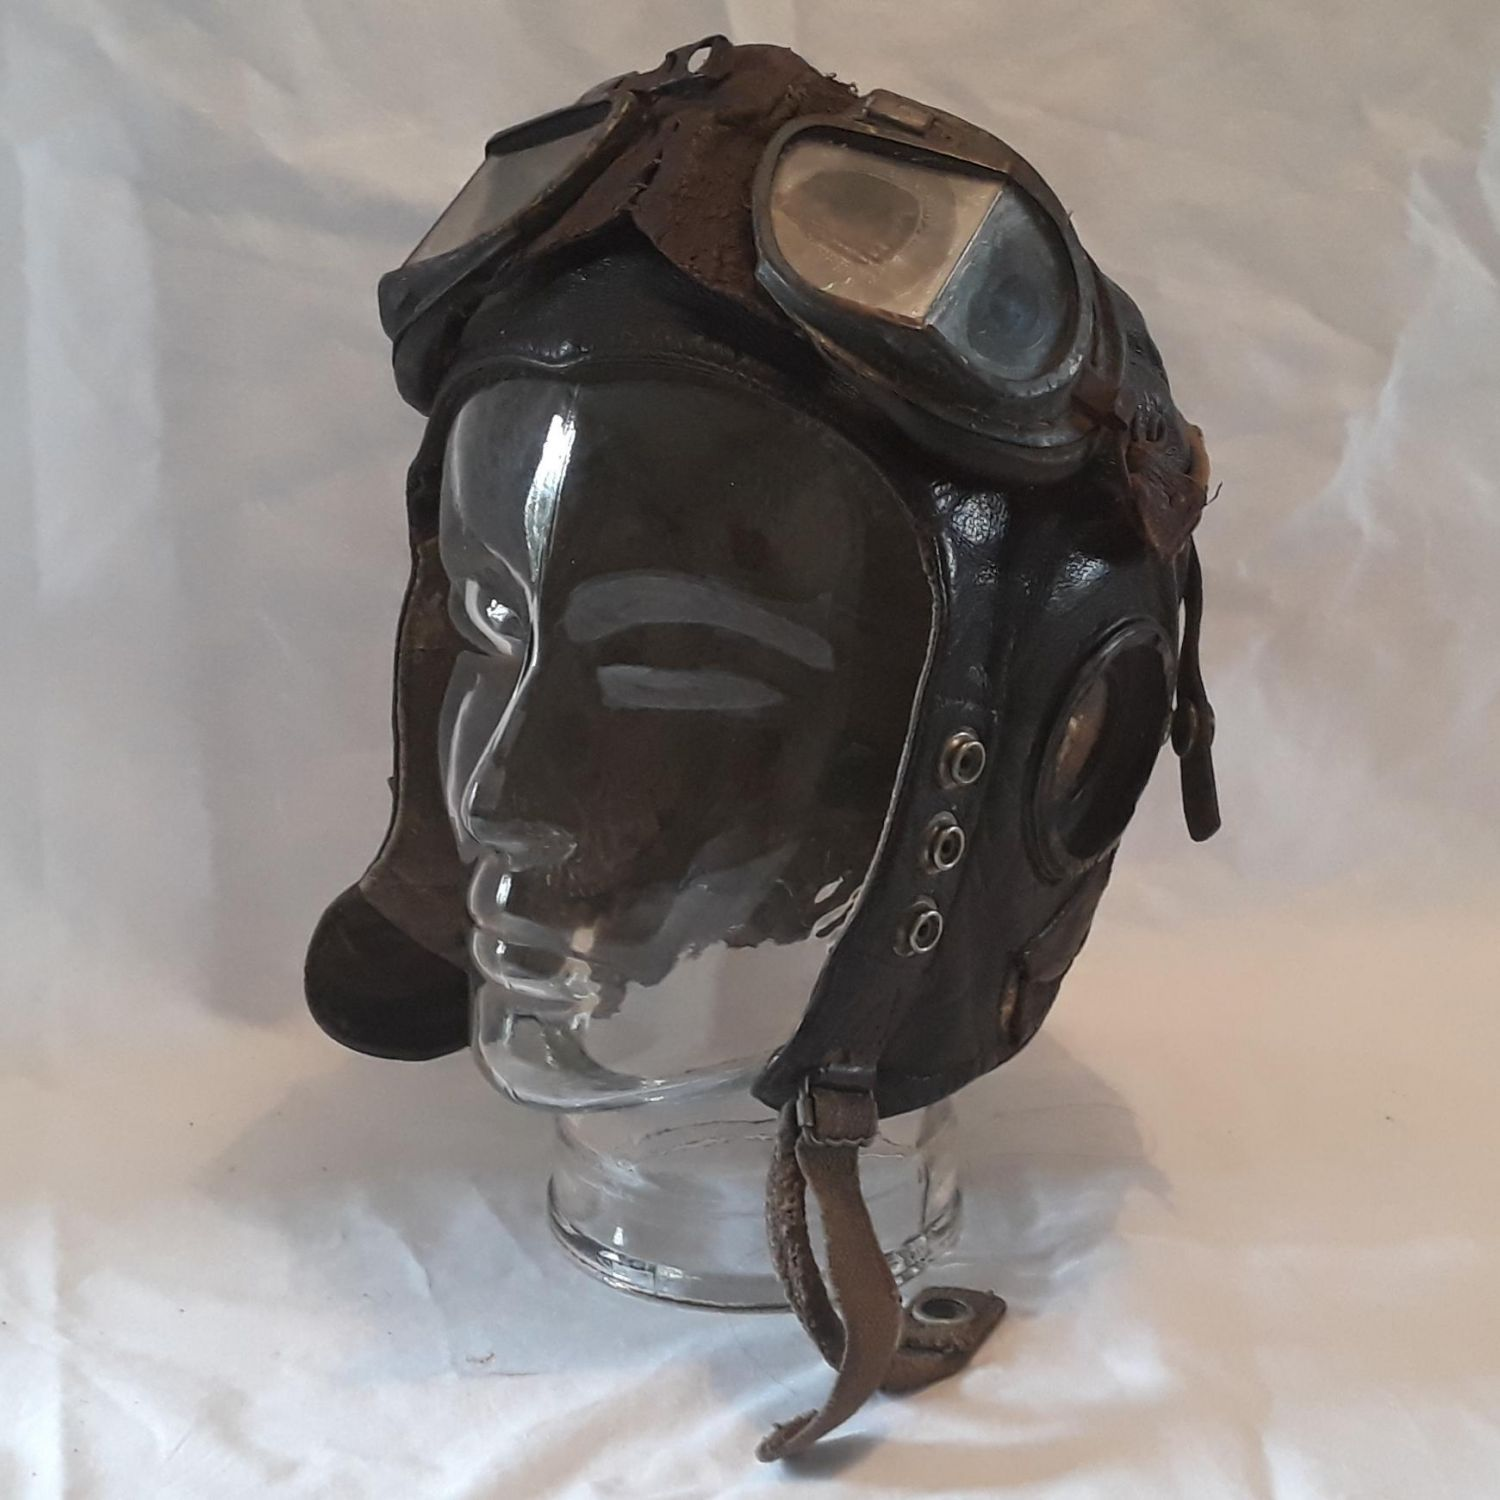 RAF WW2 'C' Type Flying Helmet and Mk111 Leather Flying Goggles